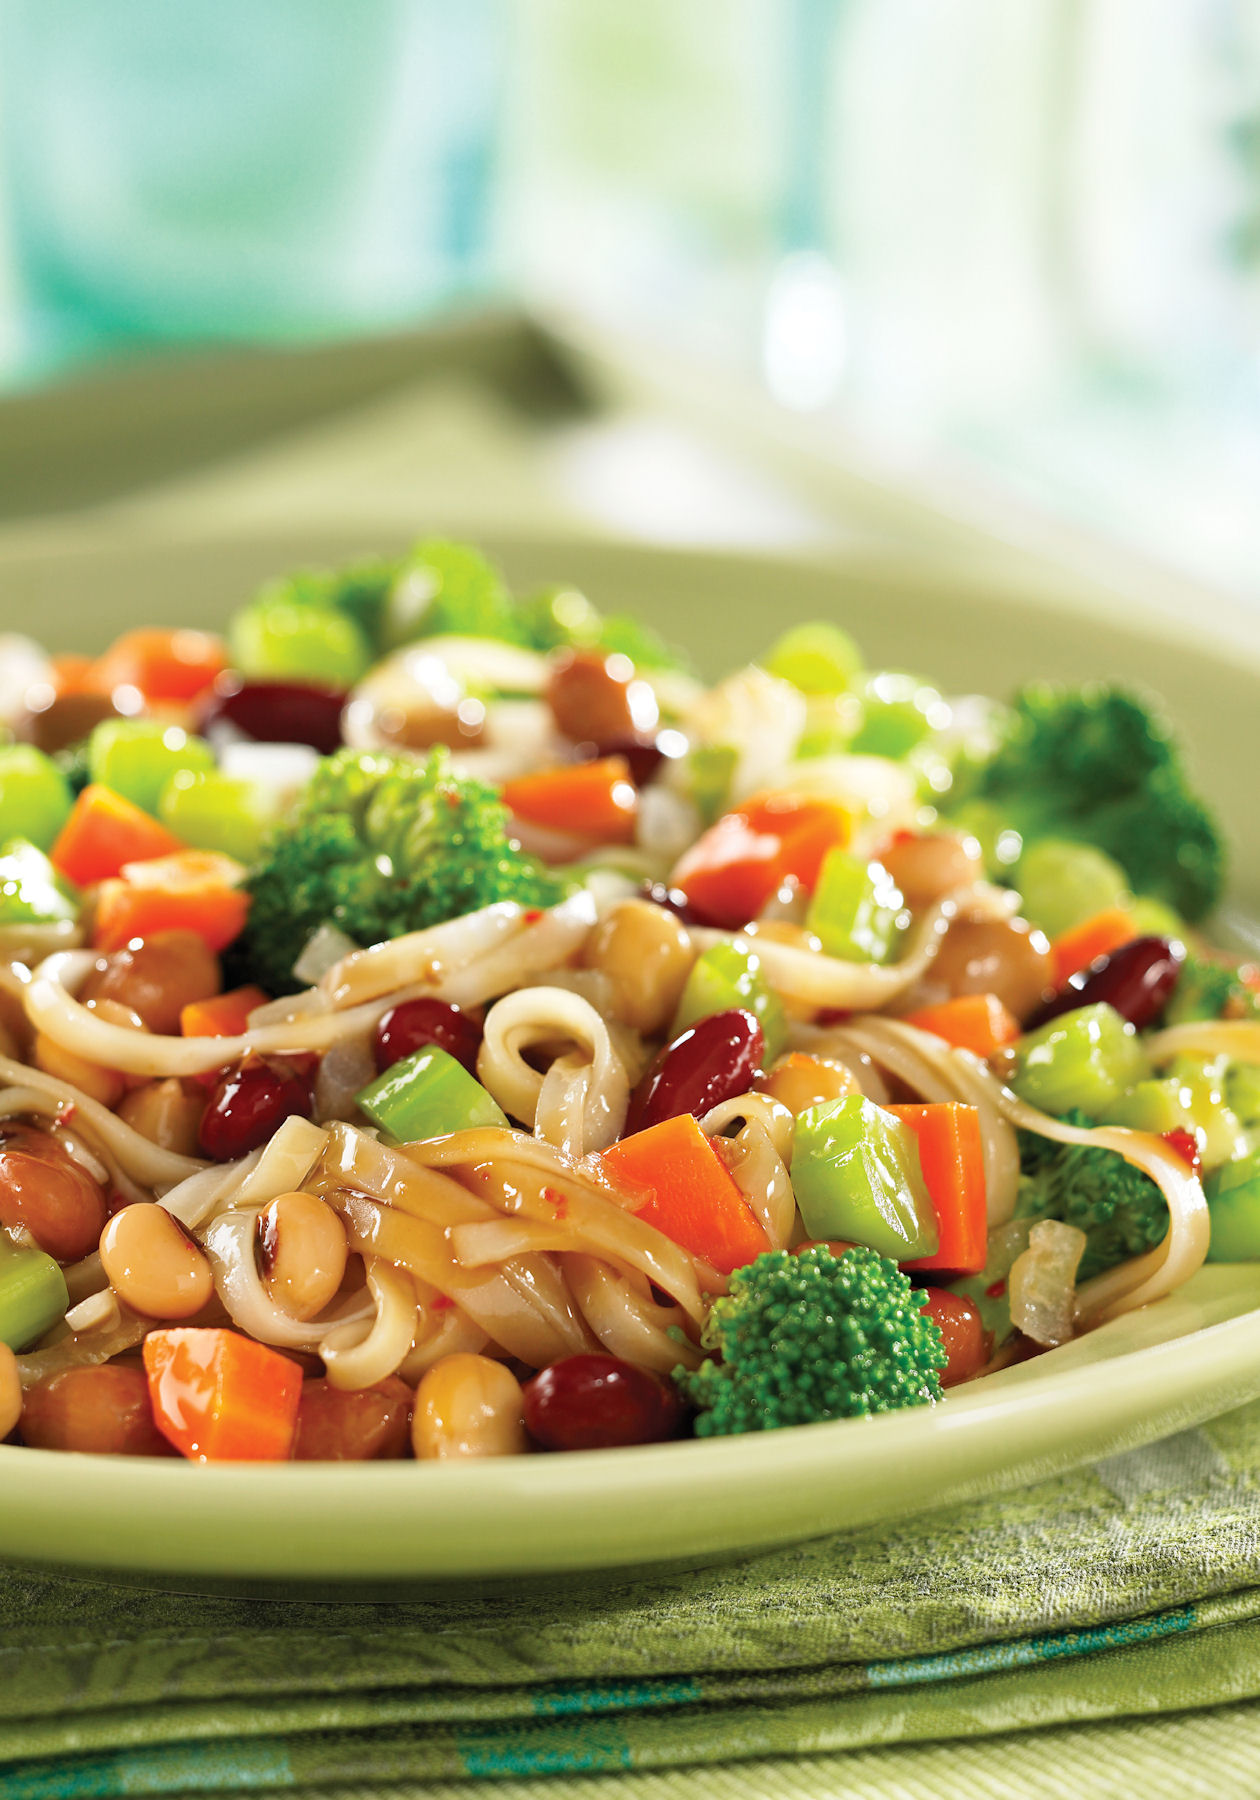 Teriyaki Rice Noodles with Veggies and Beans – Tiny Green Mom